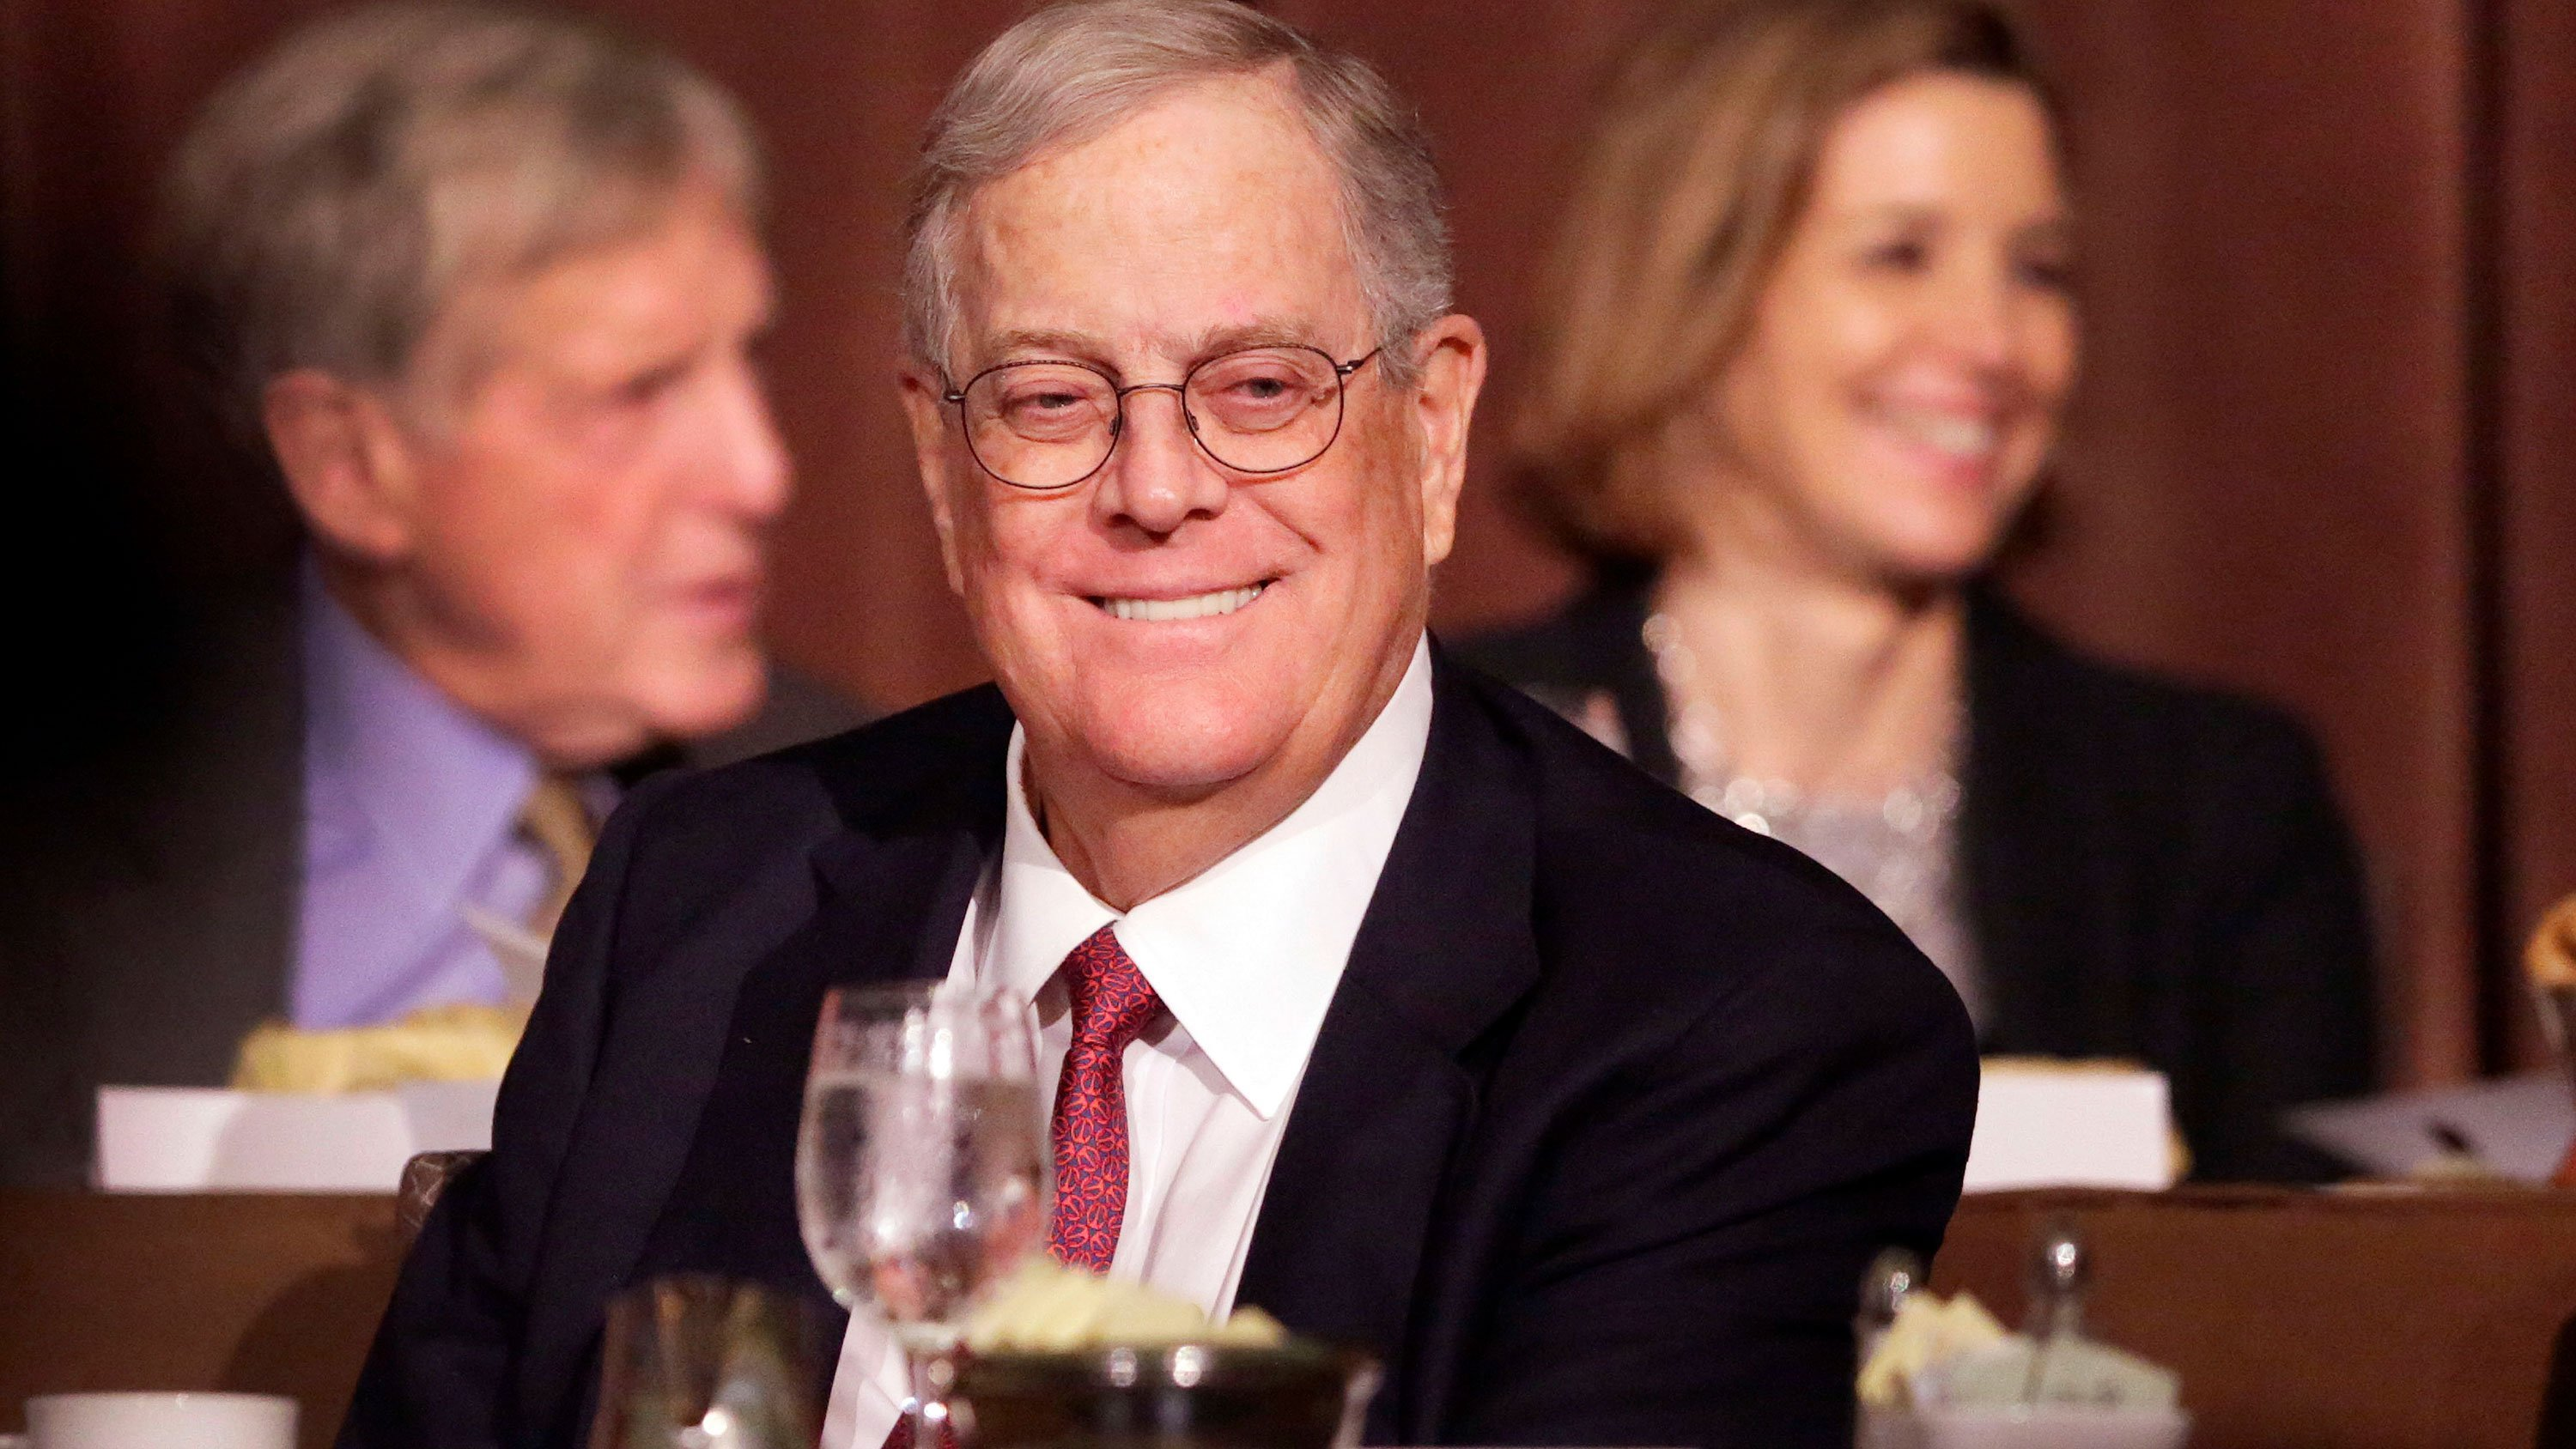 David Koch, billionaire businessman and influential GOP donor, dies